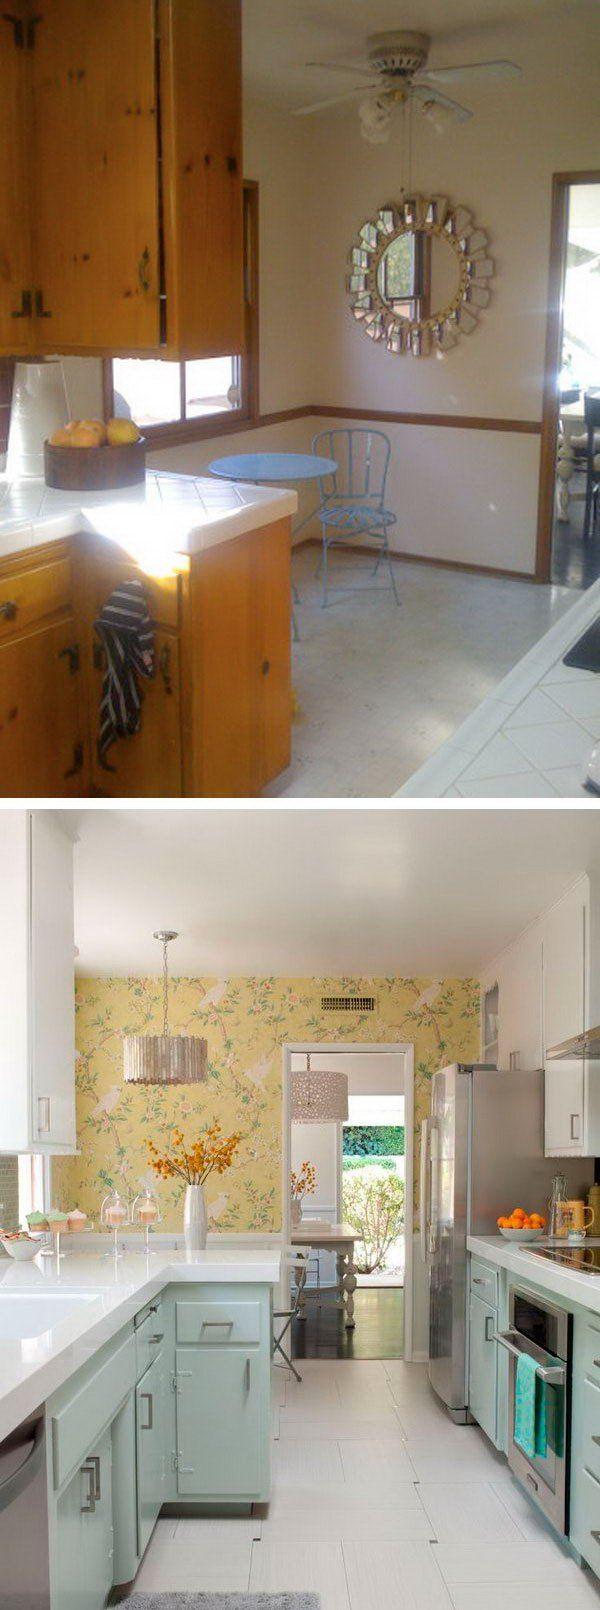 best images about budget kitchen makeover on pinterest cabinets